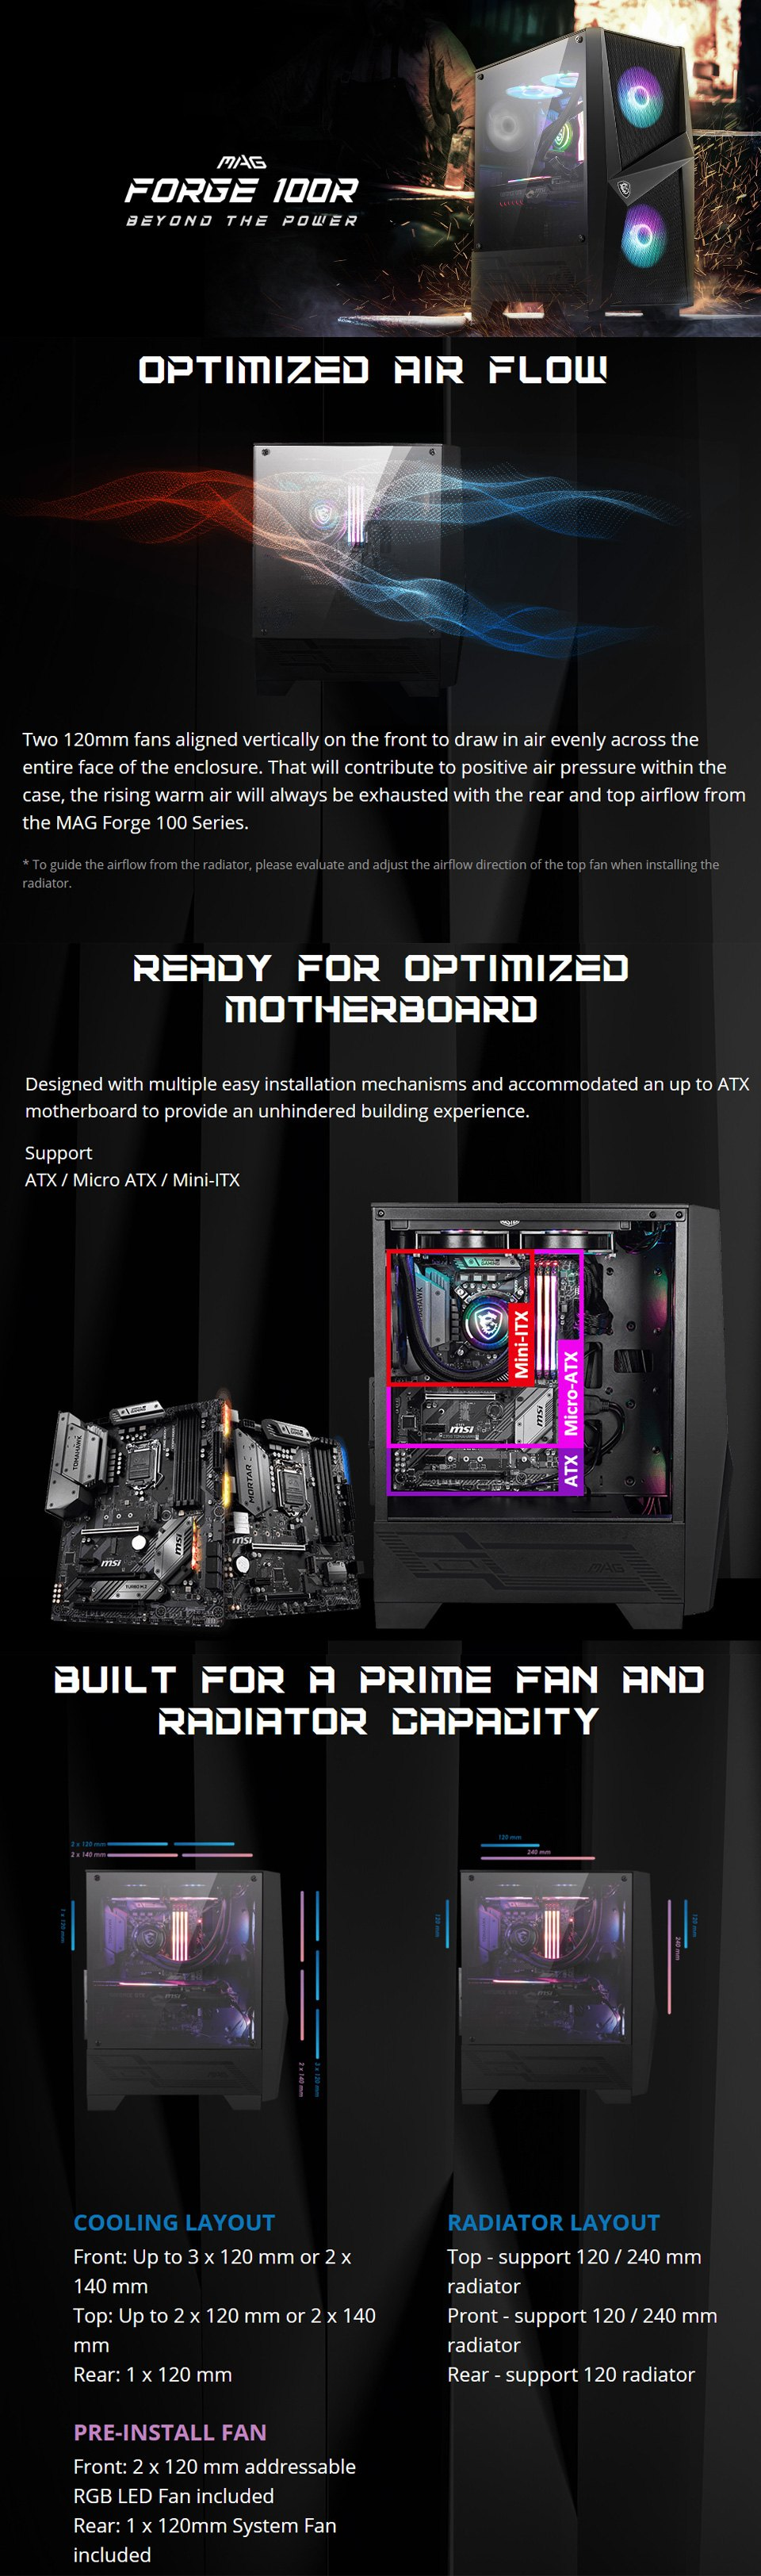 MSI Forge 100R RGB Tempered Glass Case features